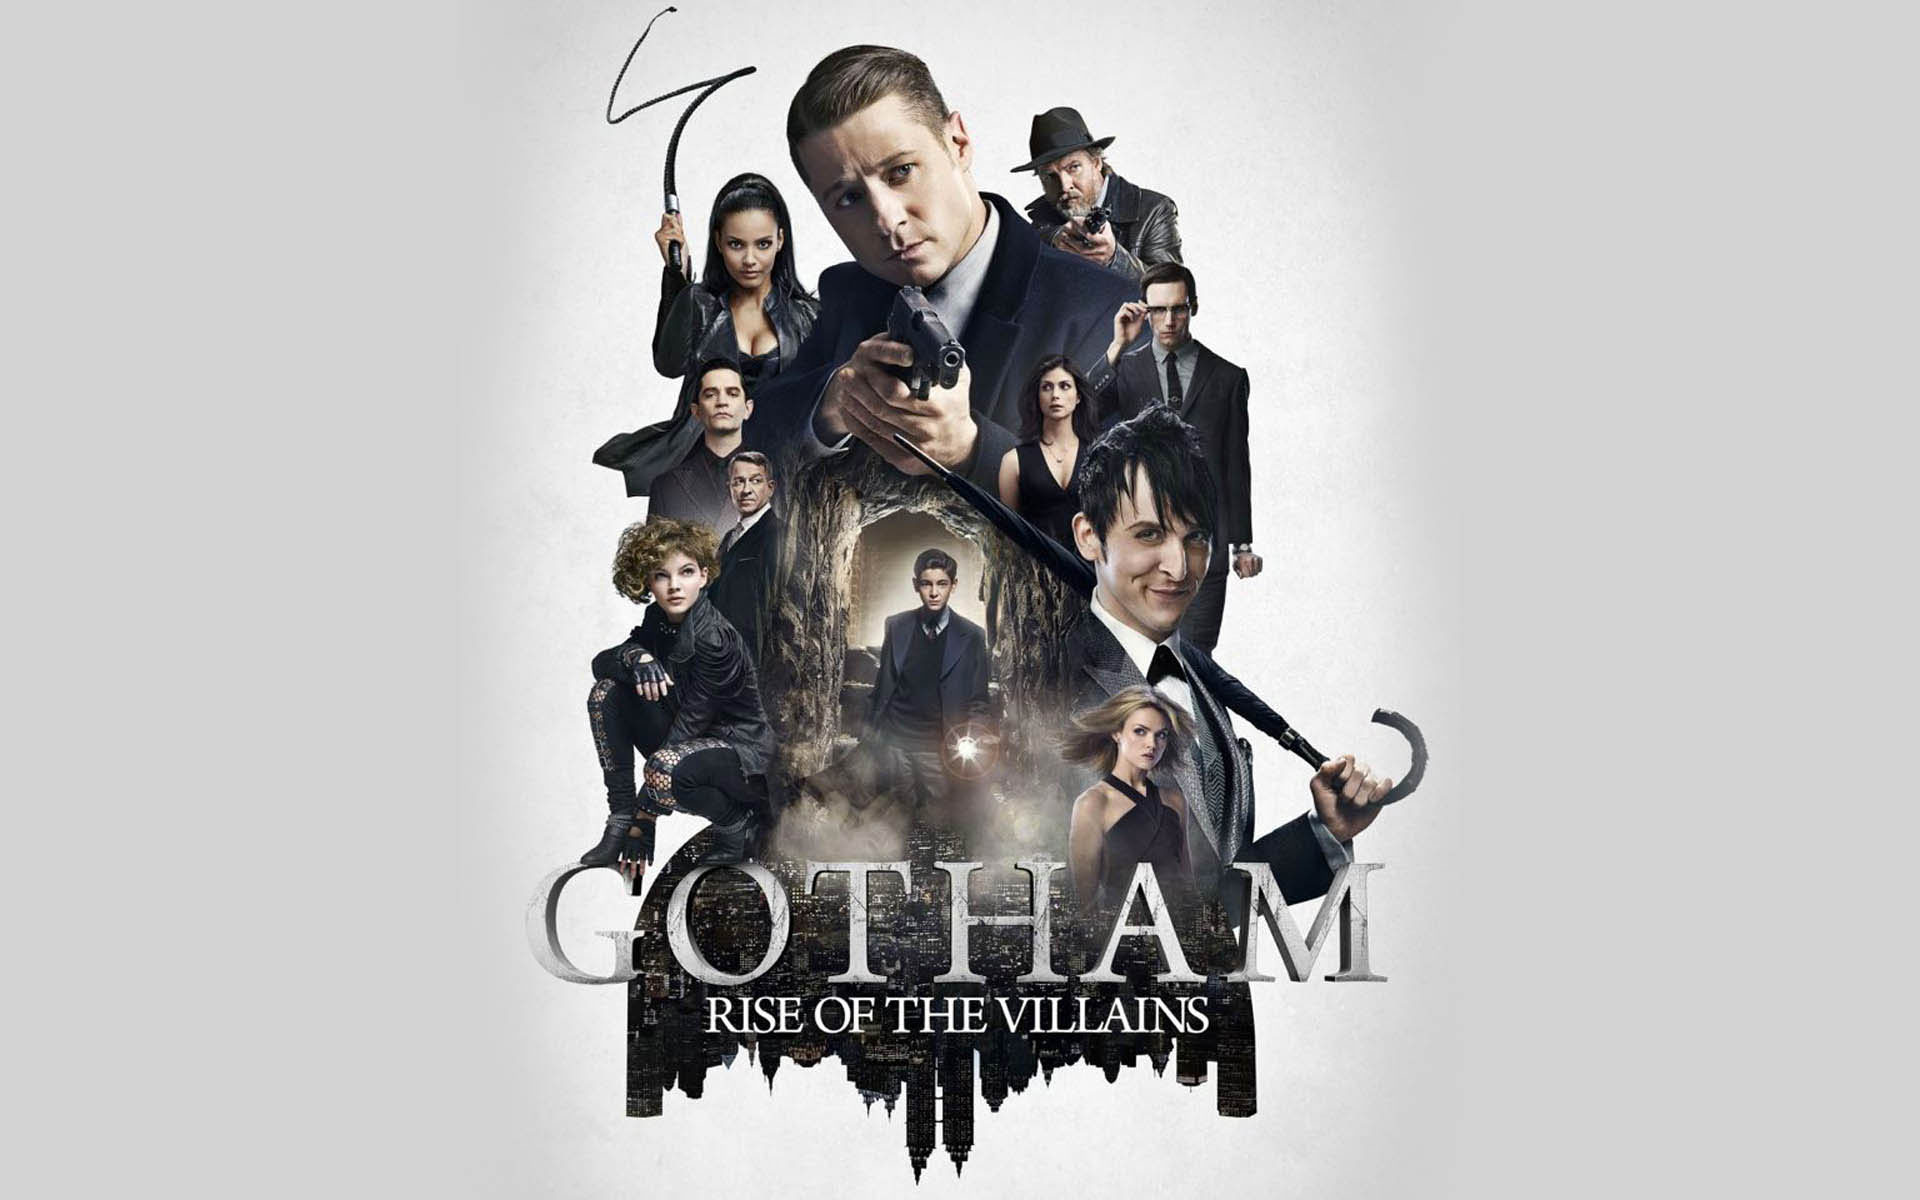 Gotham Wallpapers and Background Images   stmednet 1920x1200